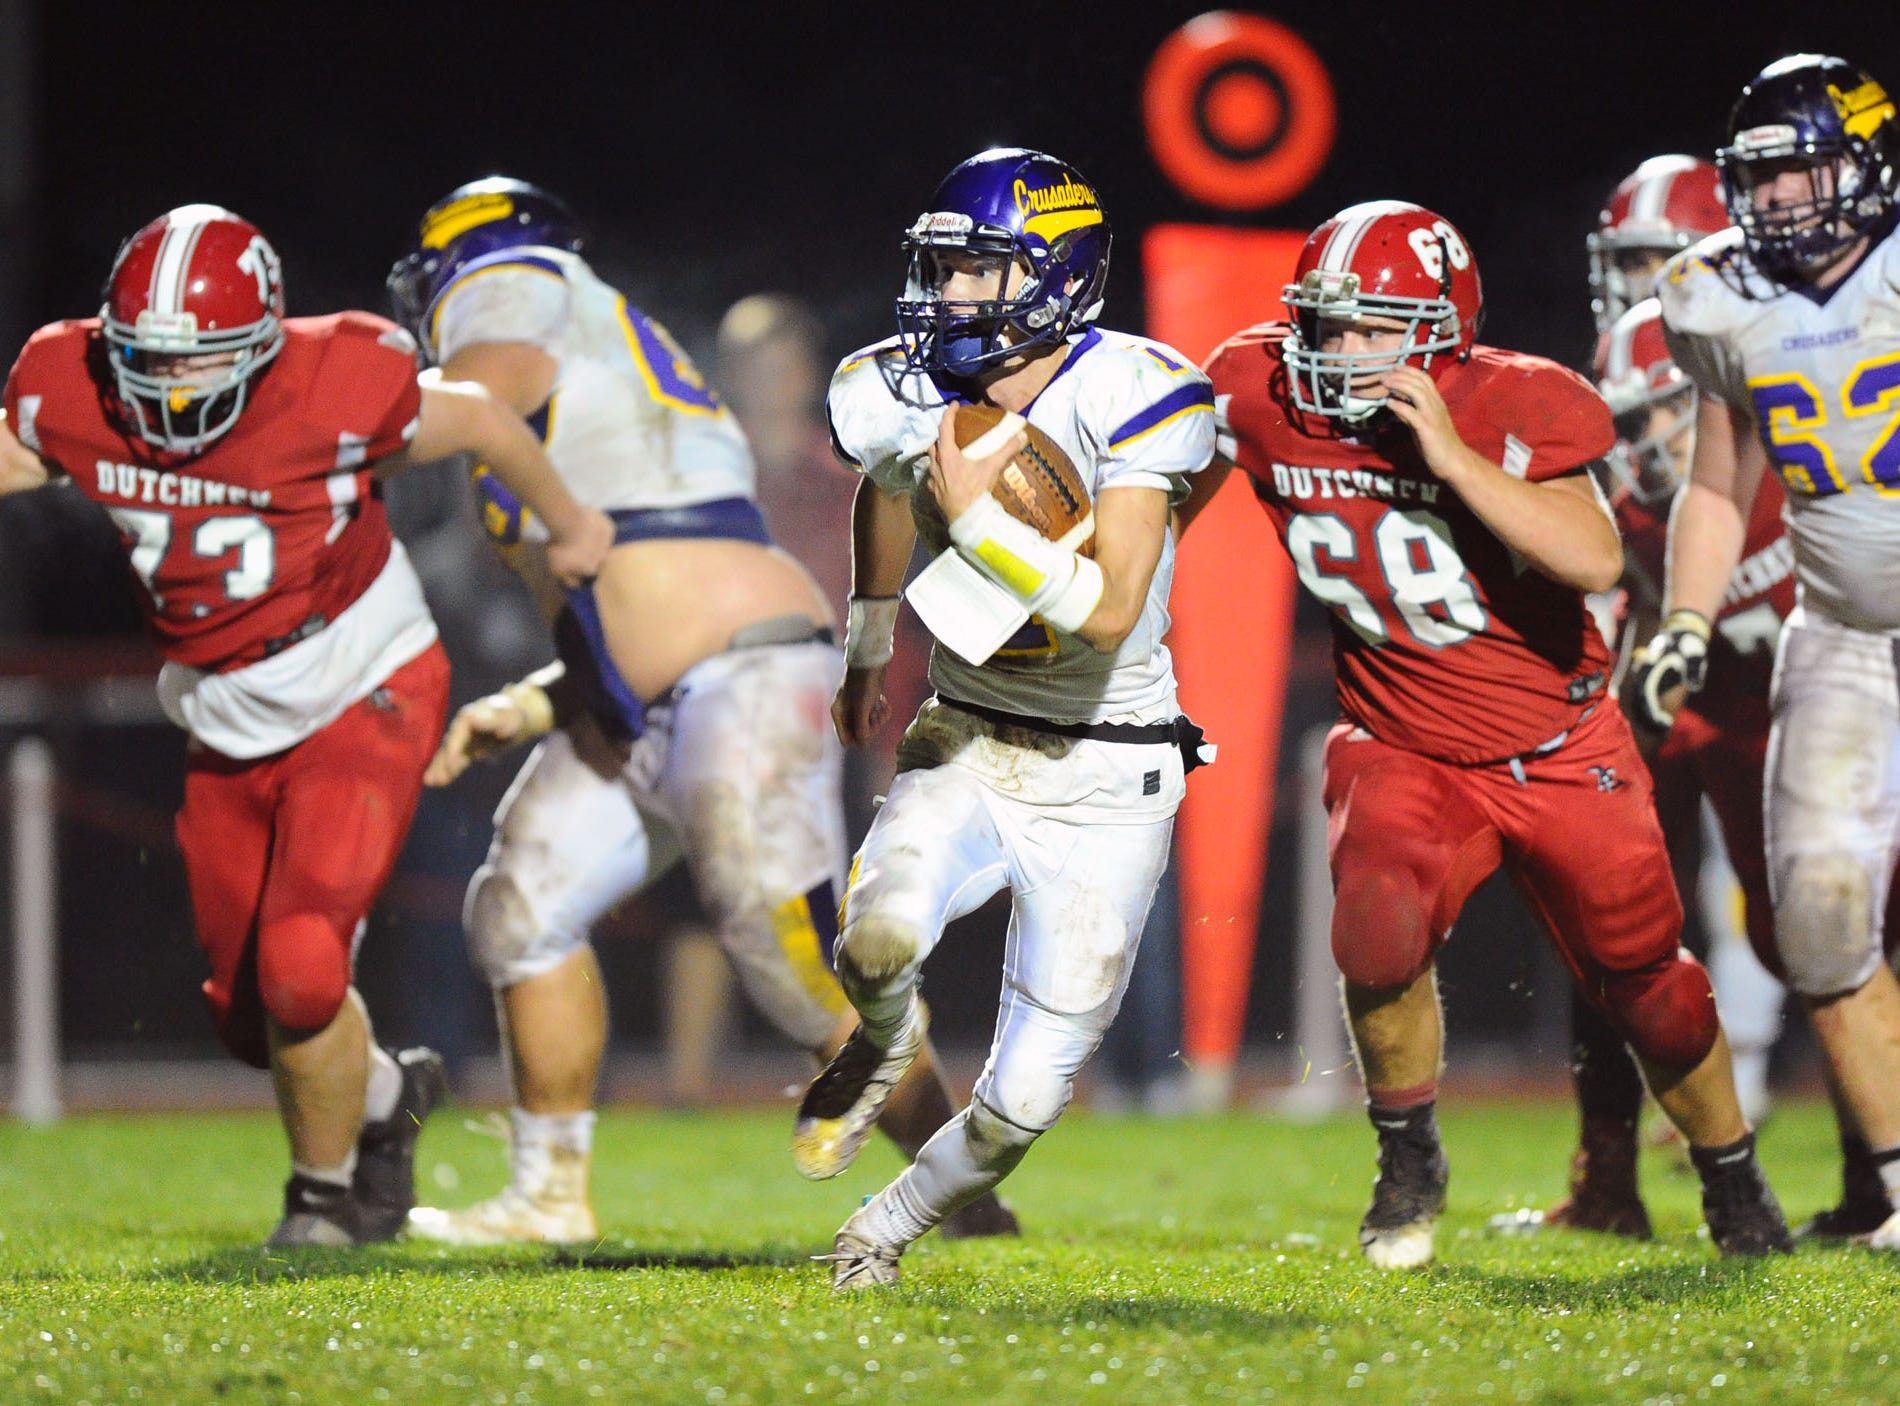 Lancaster Catholic QB Gavin Sullivan (1) outruns Annville Cleona's Logan Wagner as he runs for a 4th quarter touchdown to put Lancaster Catholic up 23-7 in Friday night's game against Lancaster Catholic.